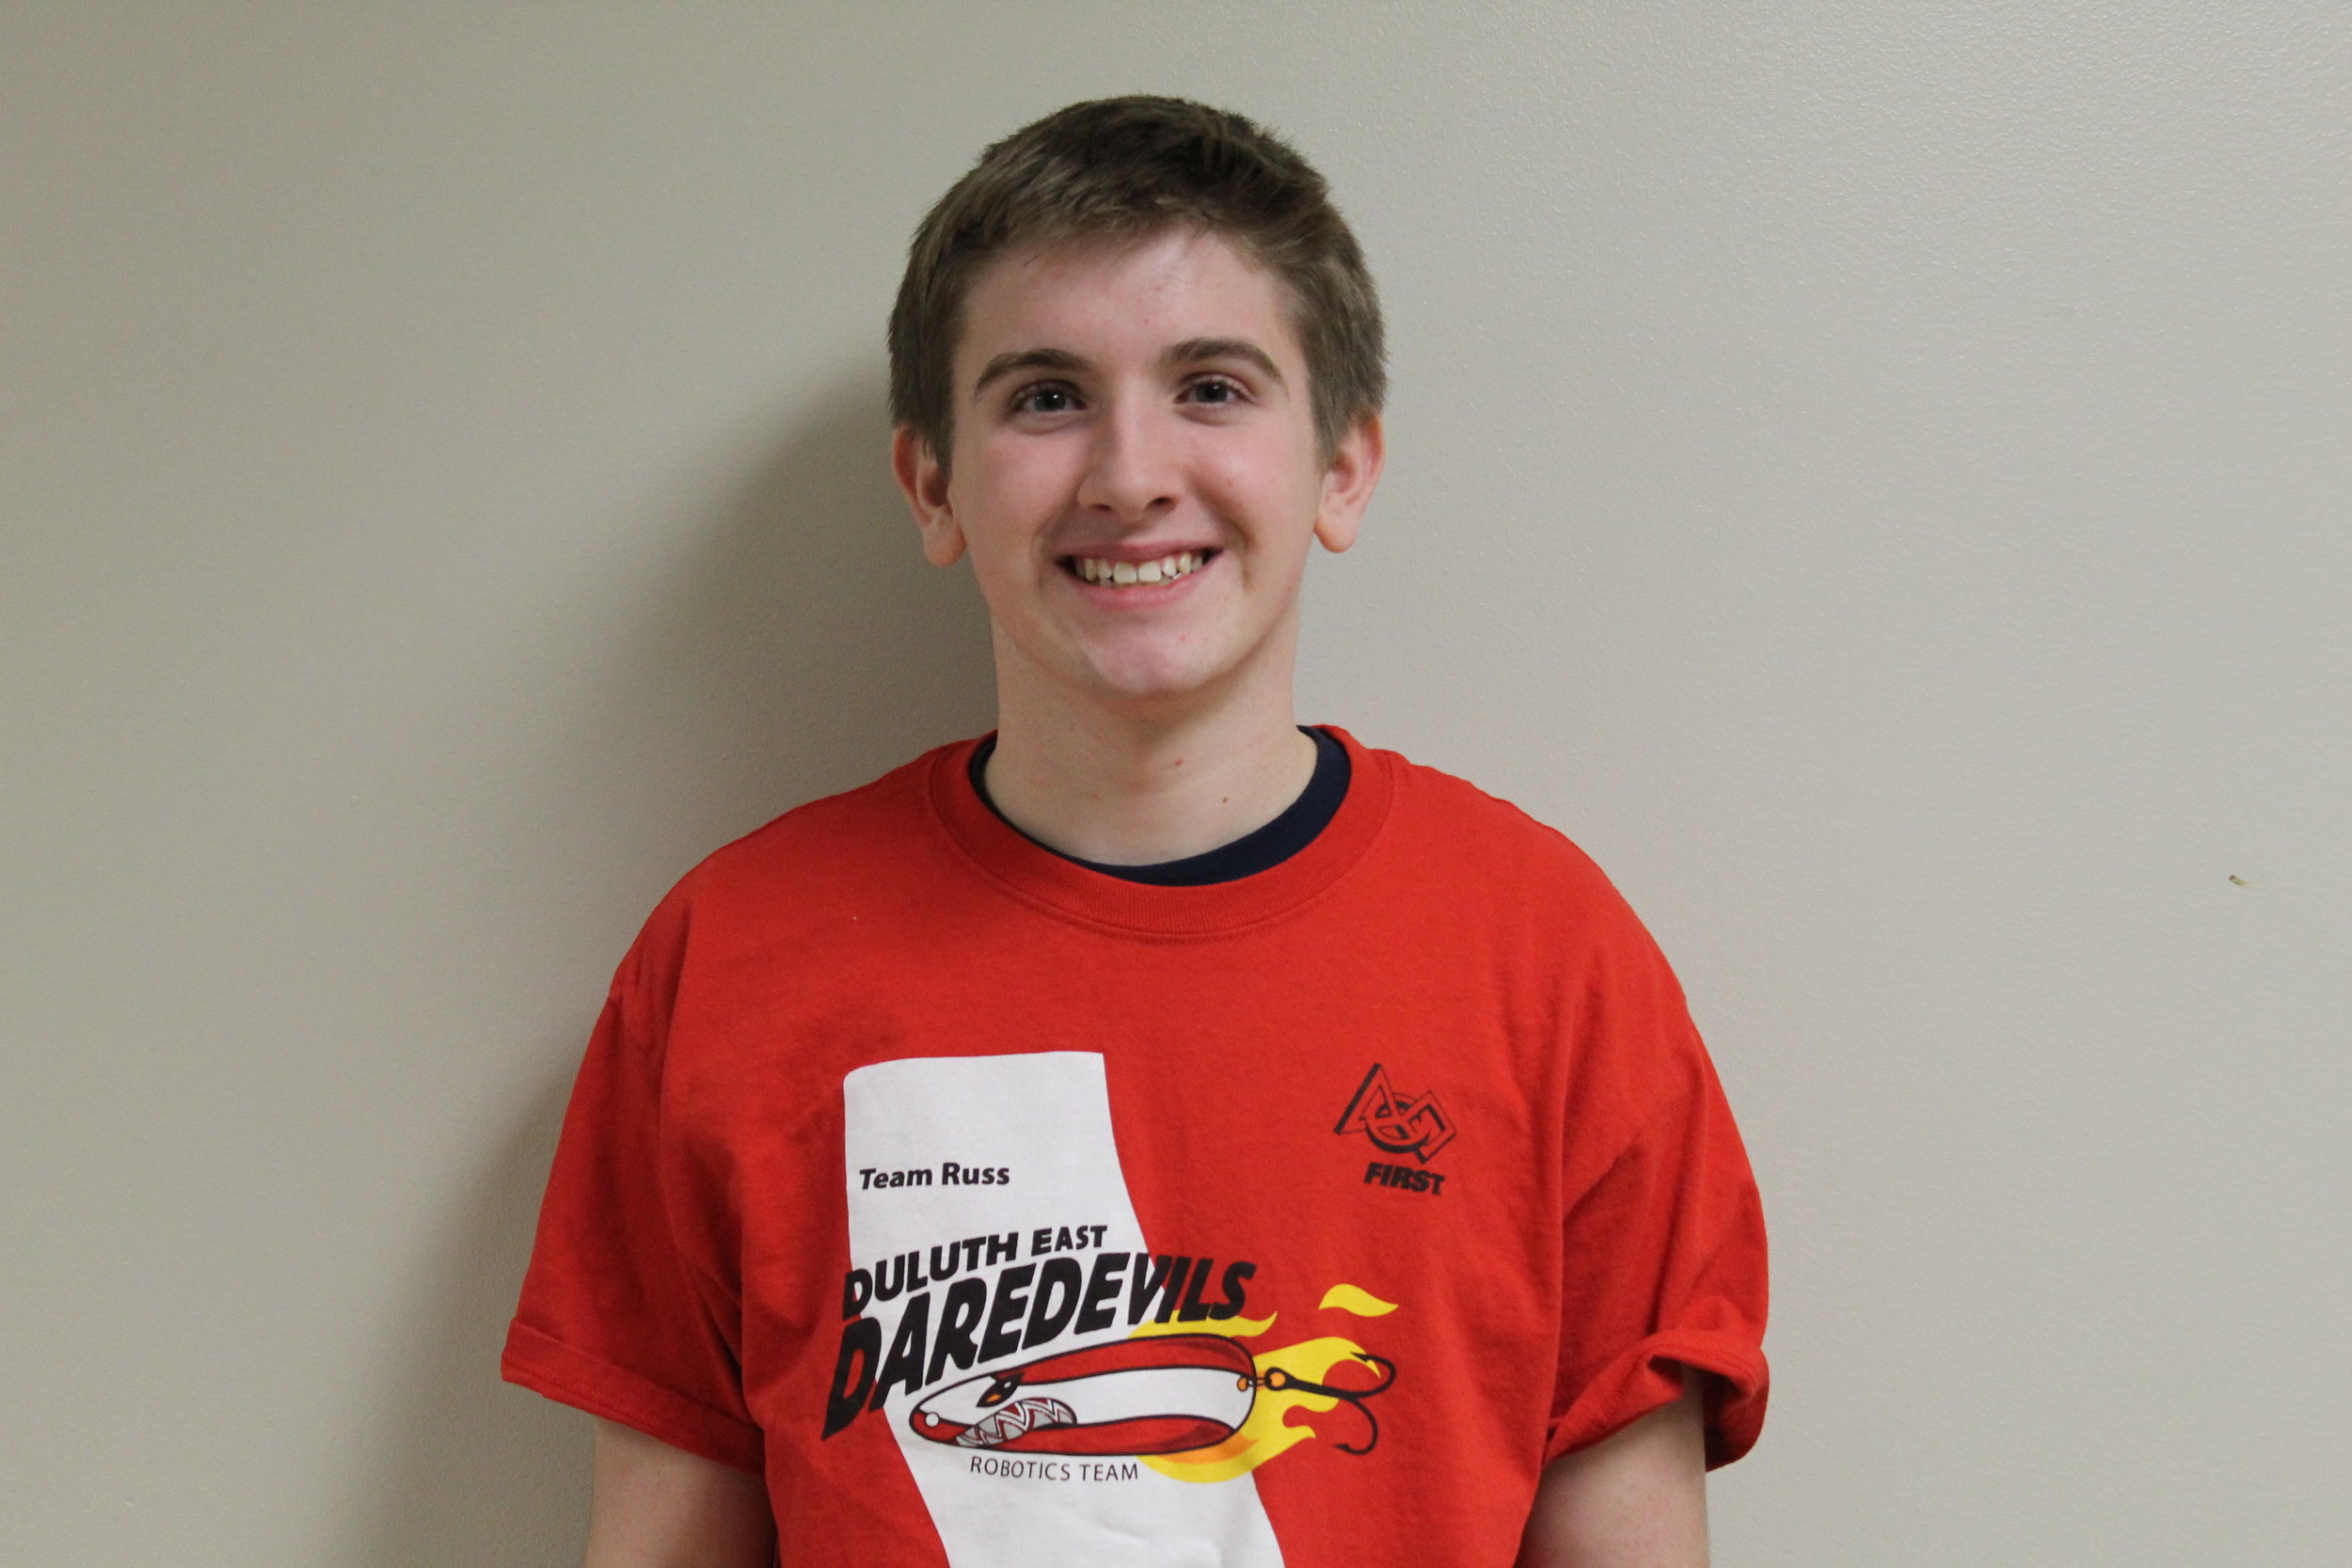 Daniel n. - Daniel is a freshman at east and this is his first year on the team. He loves the show